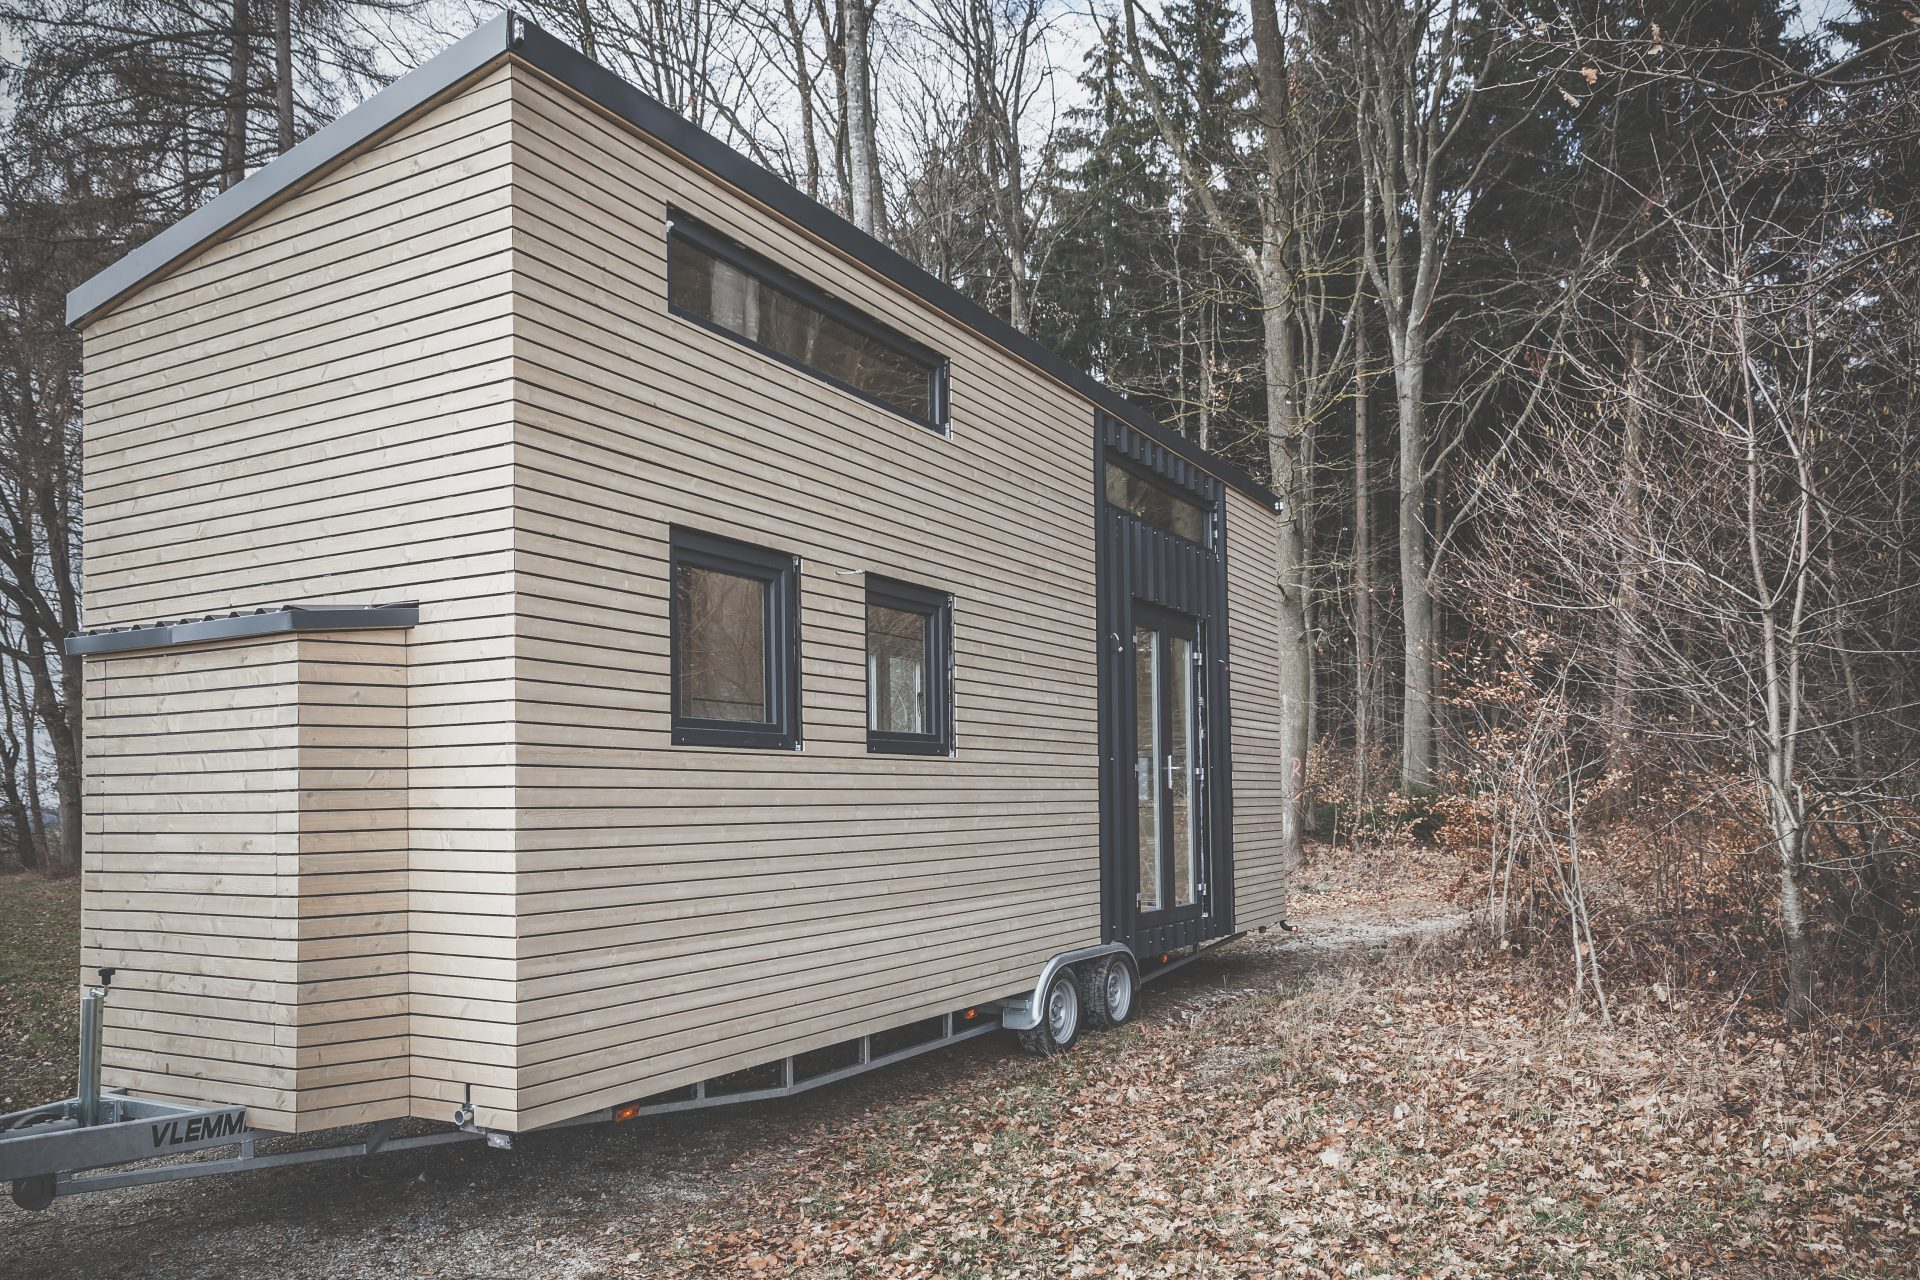 Tiny House Studios Moderne Minihauser Auf Radern Made In Germany